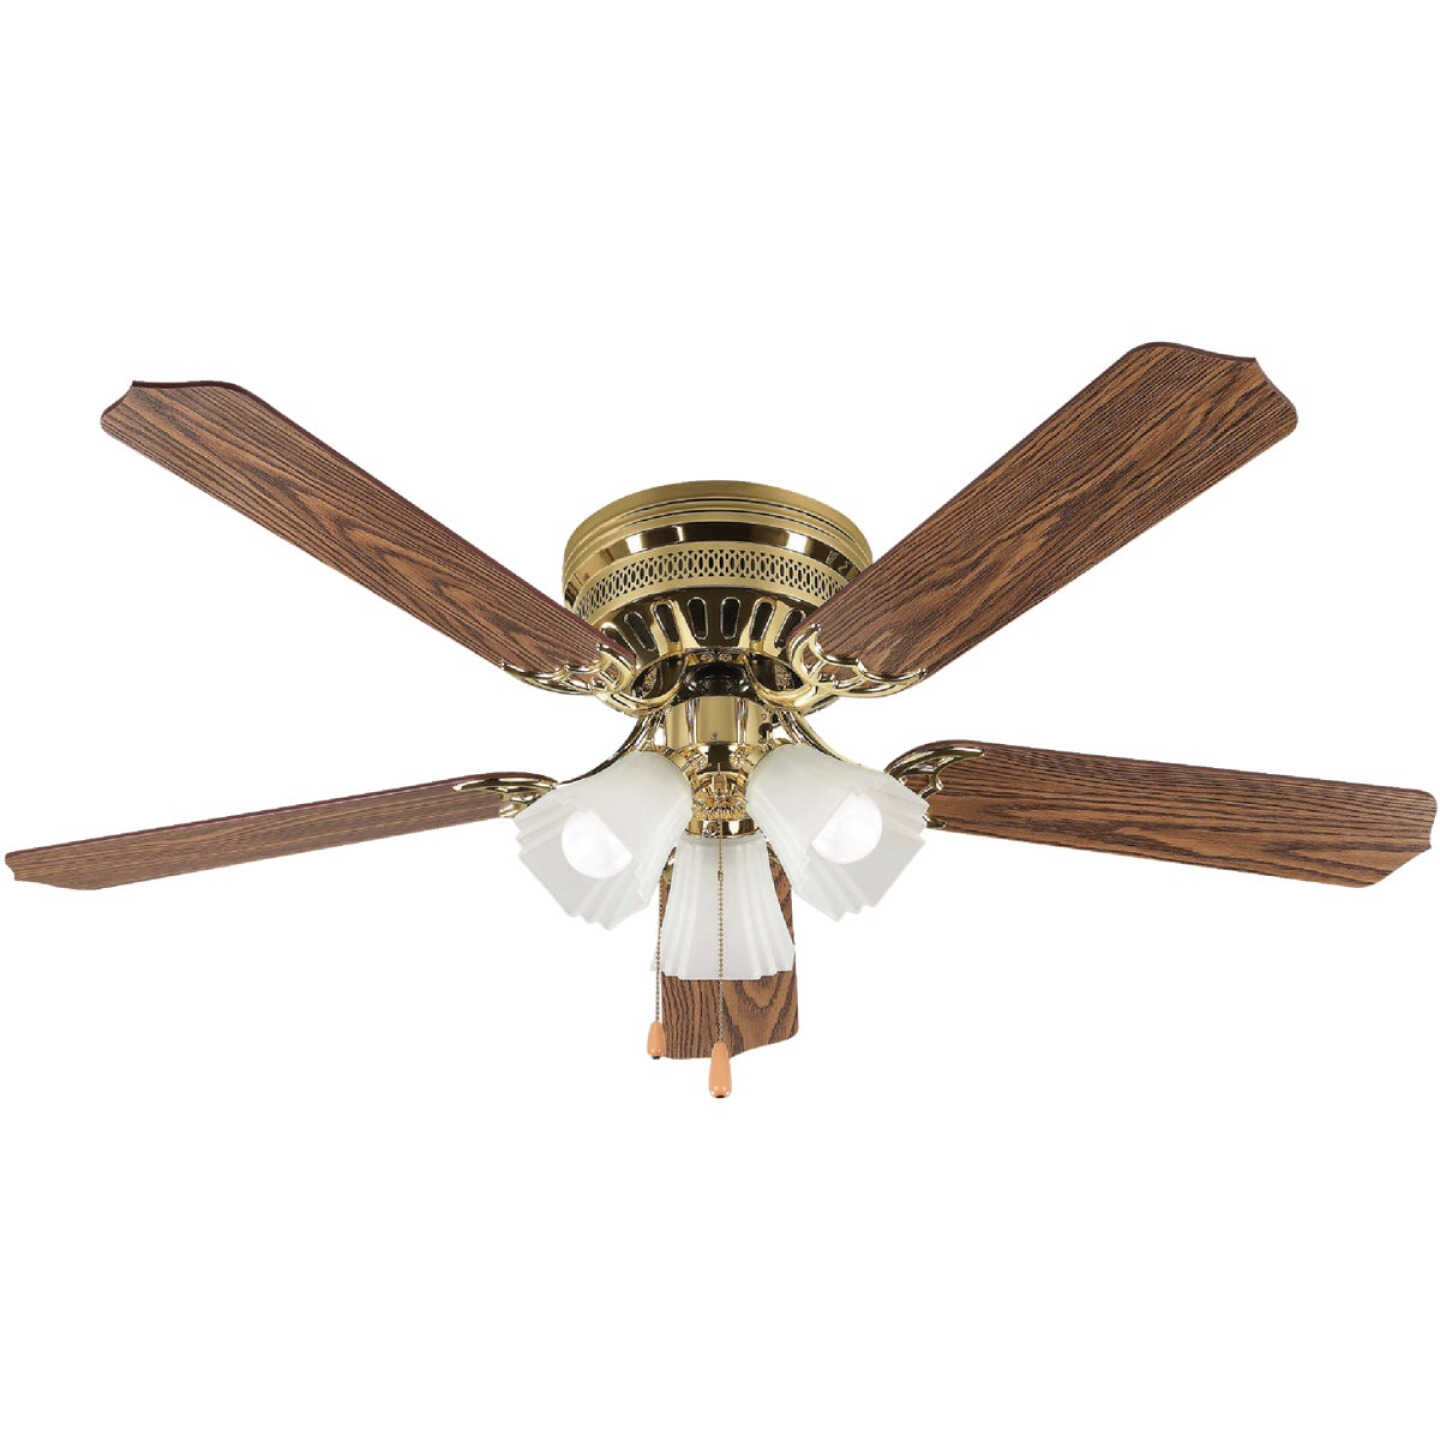 Home Impressions Piedmont 52 In. Polished Brass Ceiling Fan with Light Kit Image 1